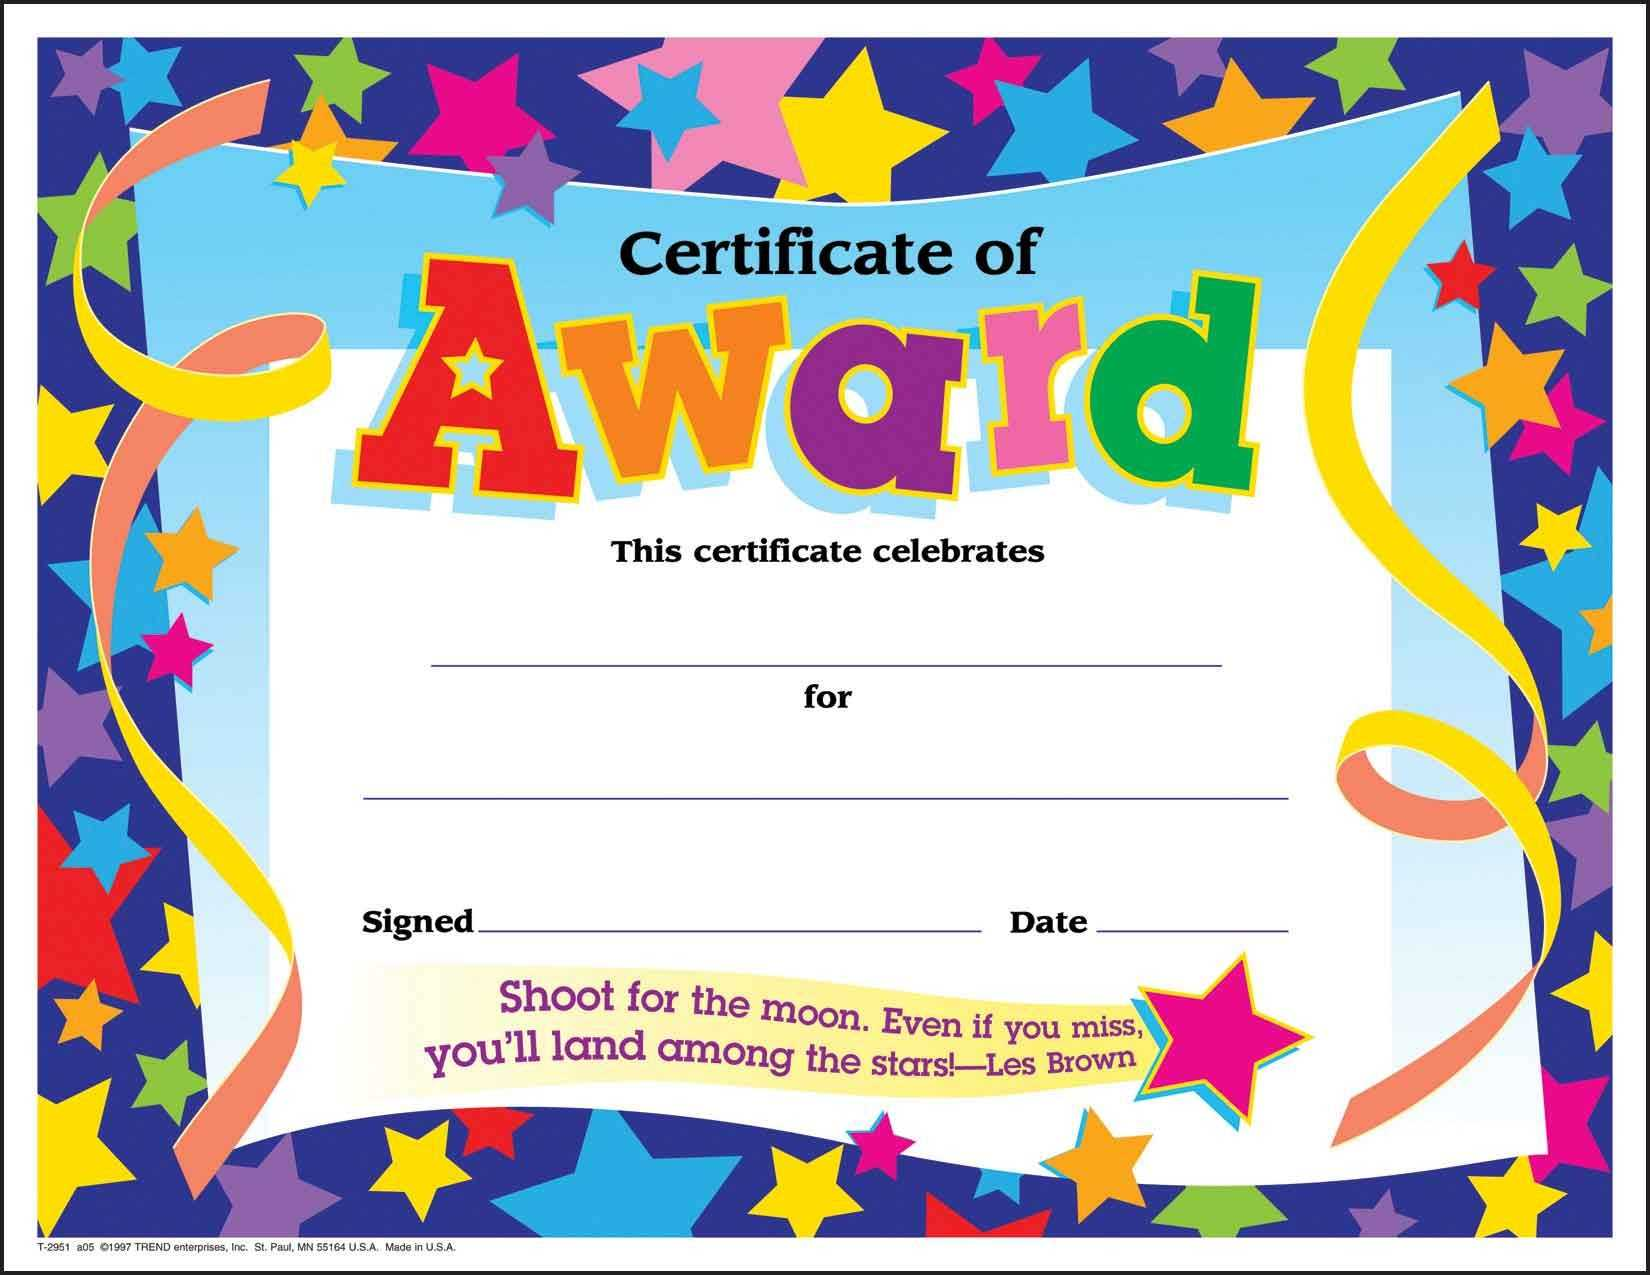 Certificate Template For Kids Free Certificate Templates With Certificate Of Achievement Template For Kids